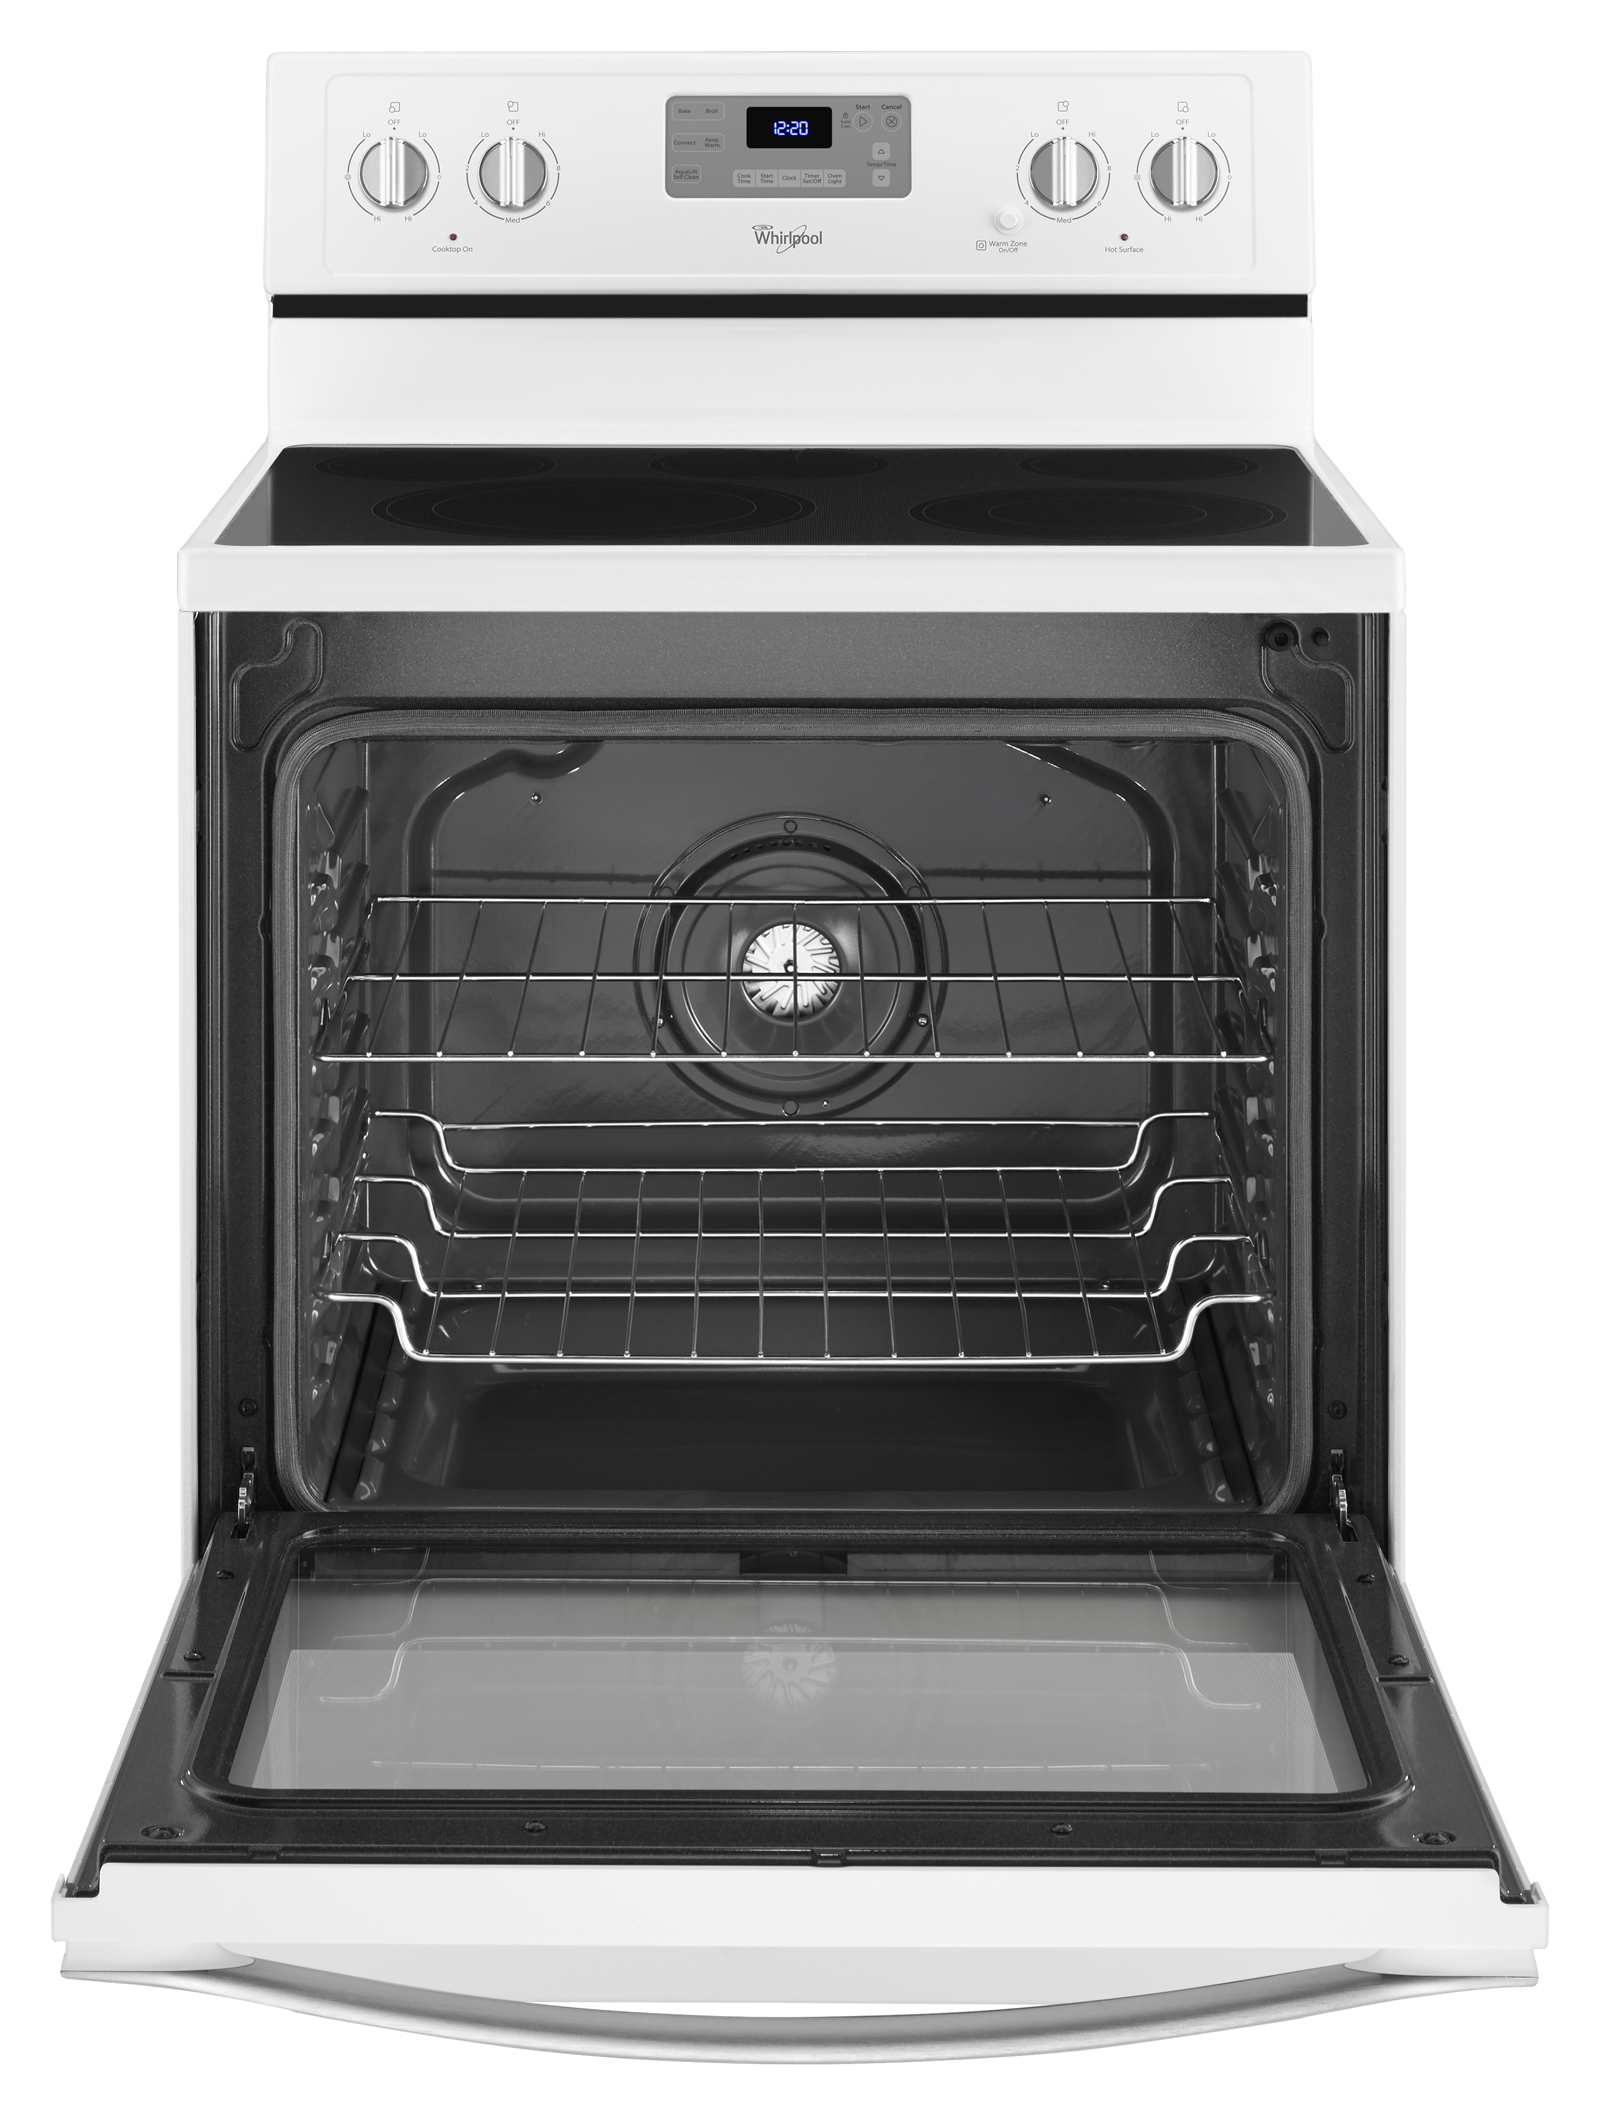 Whirlpool 6.4 cu. ft. Freestanding Electric Range - White